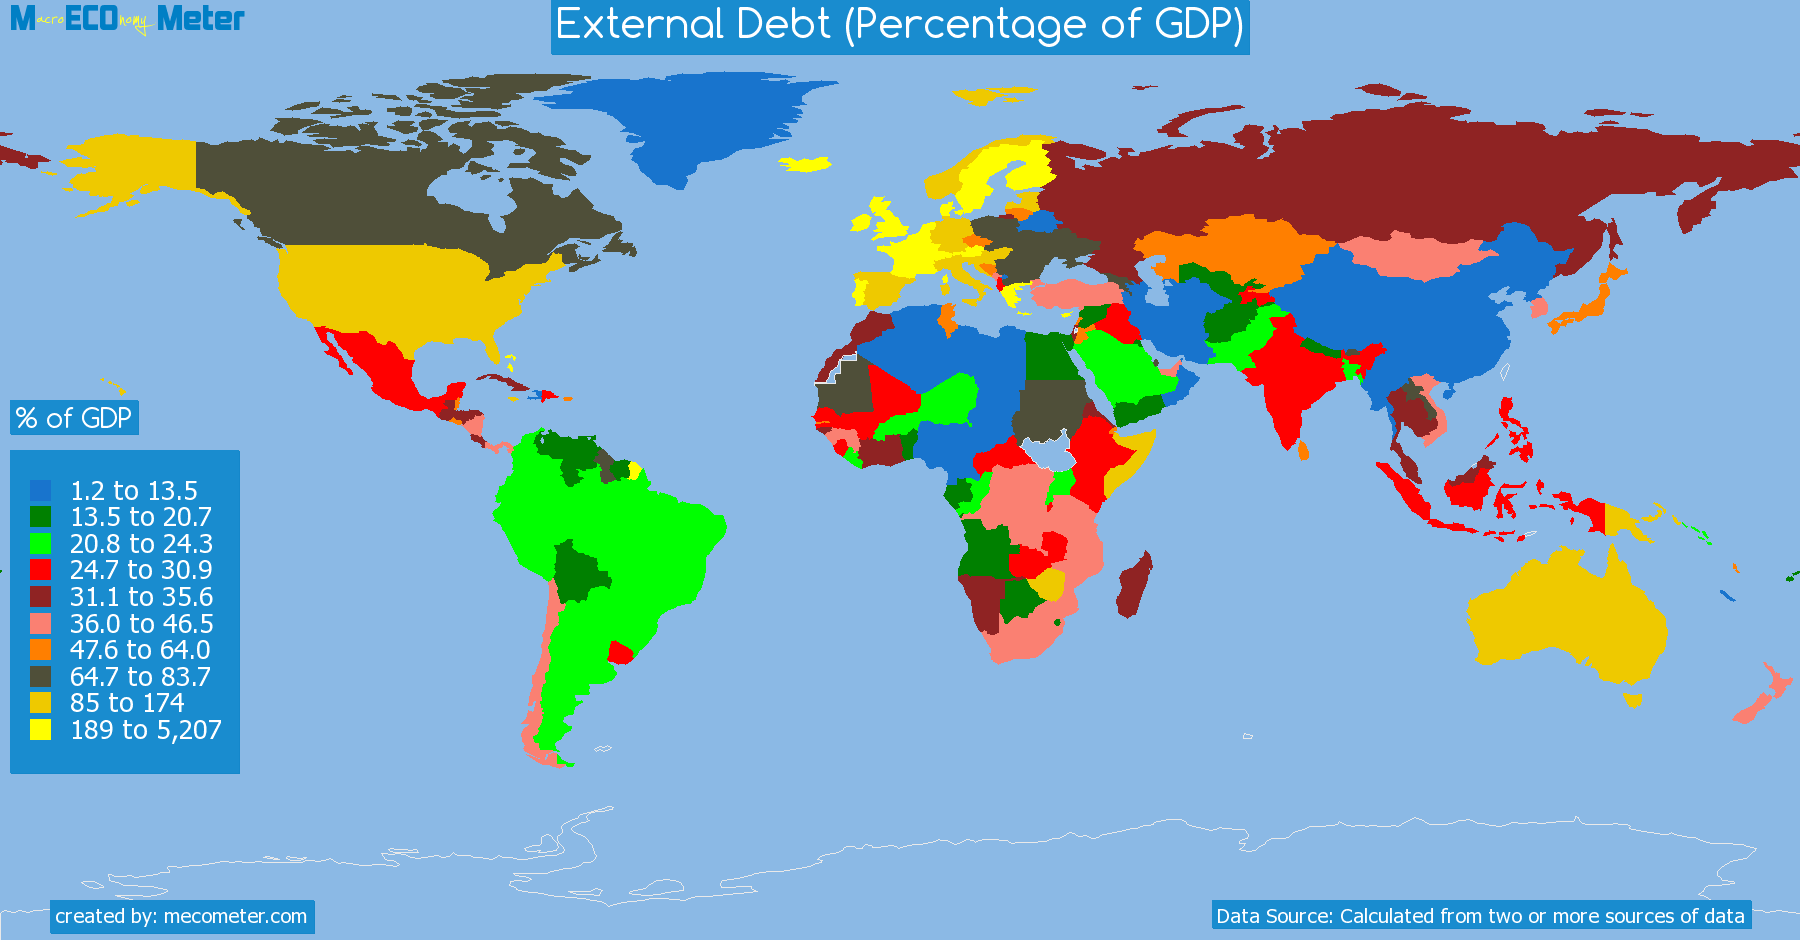 list of countries by External Debt (Percentage of GDP)